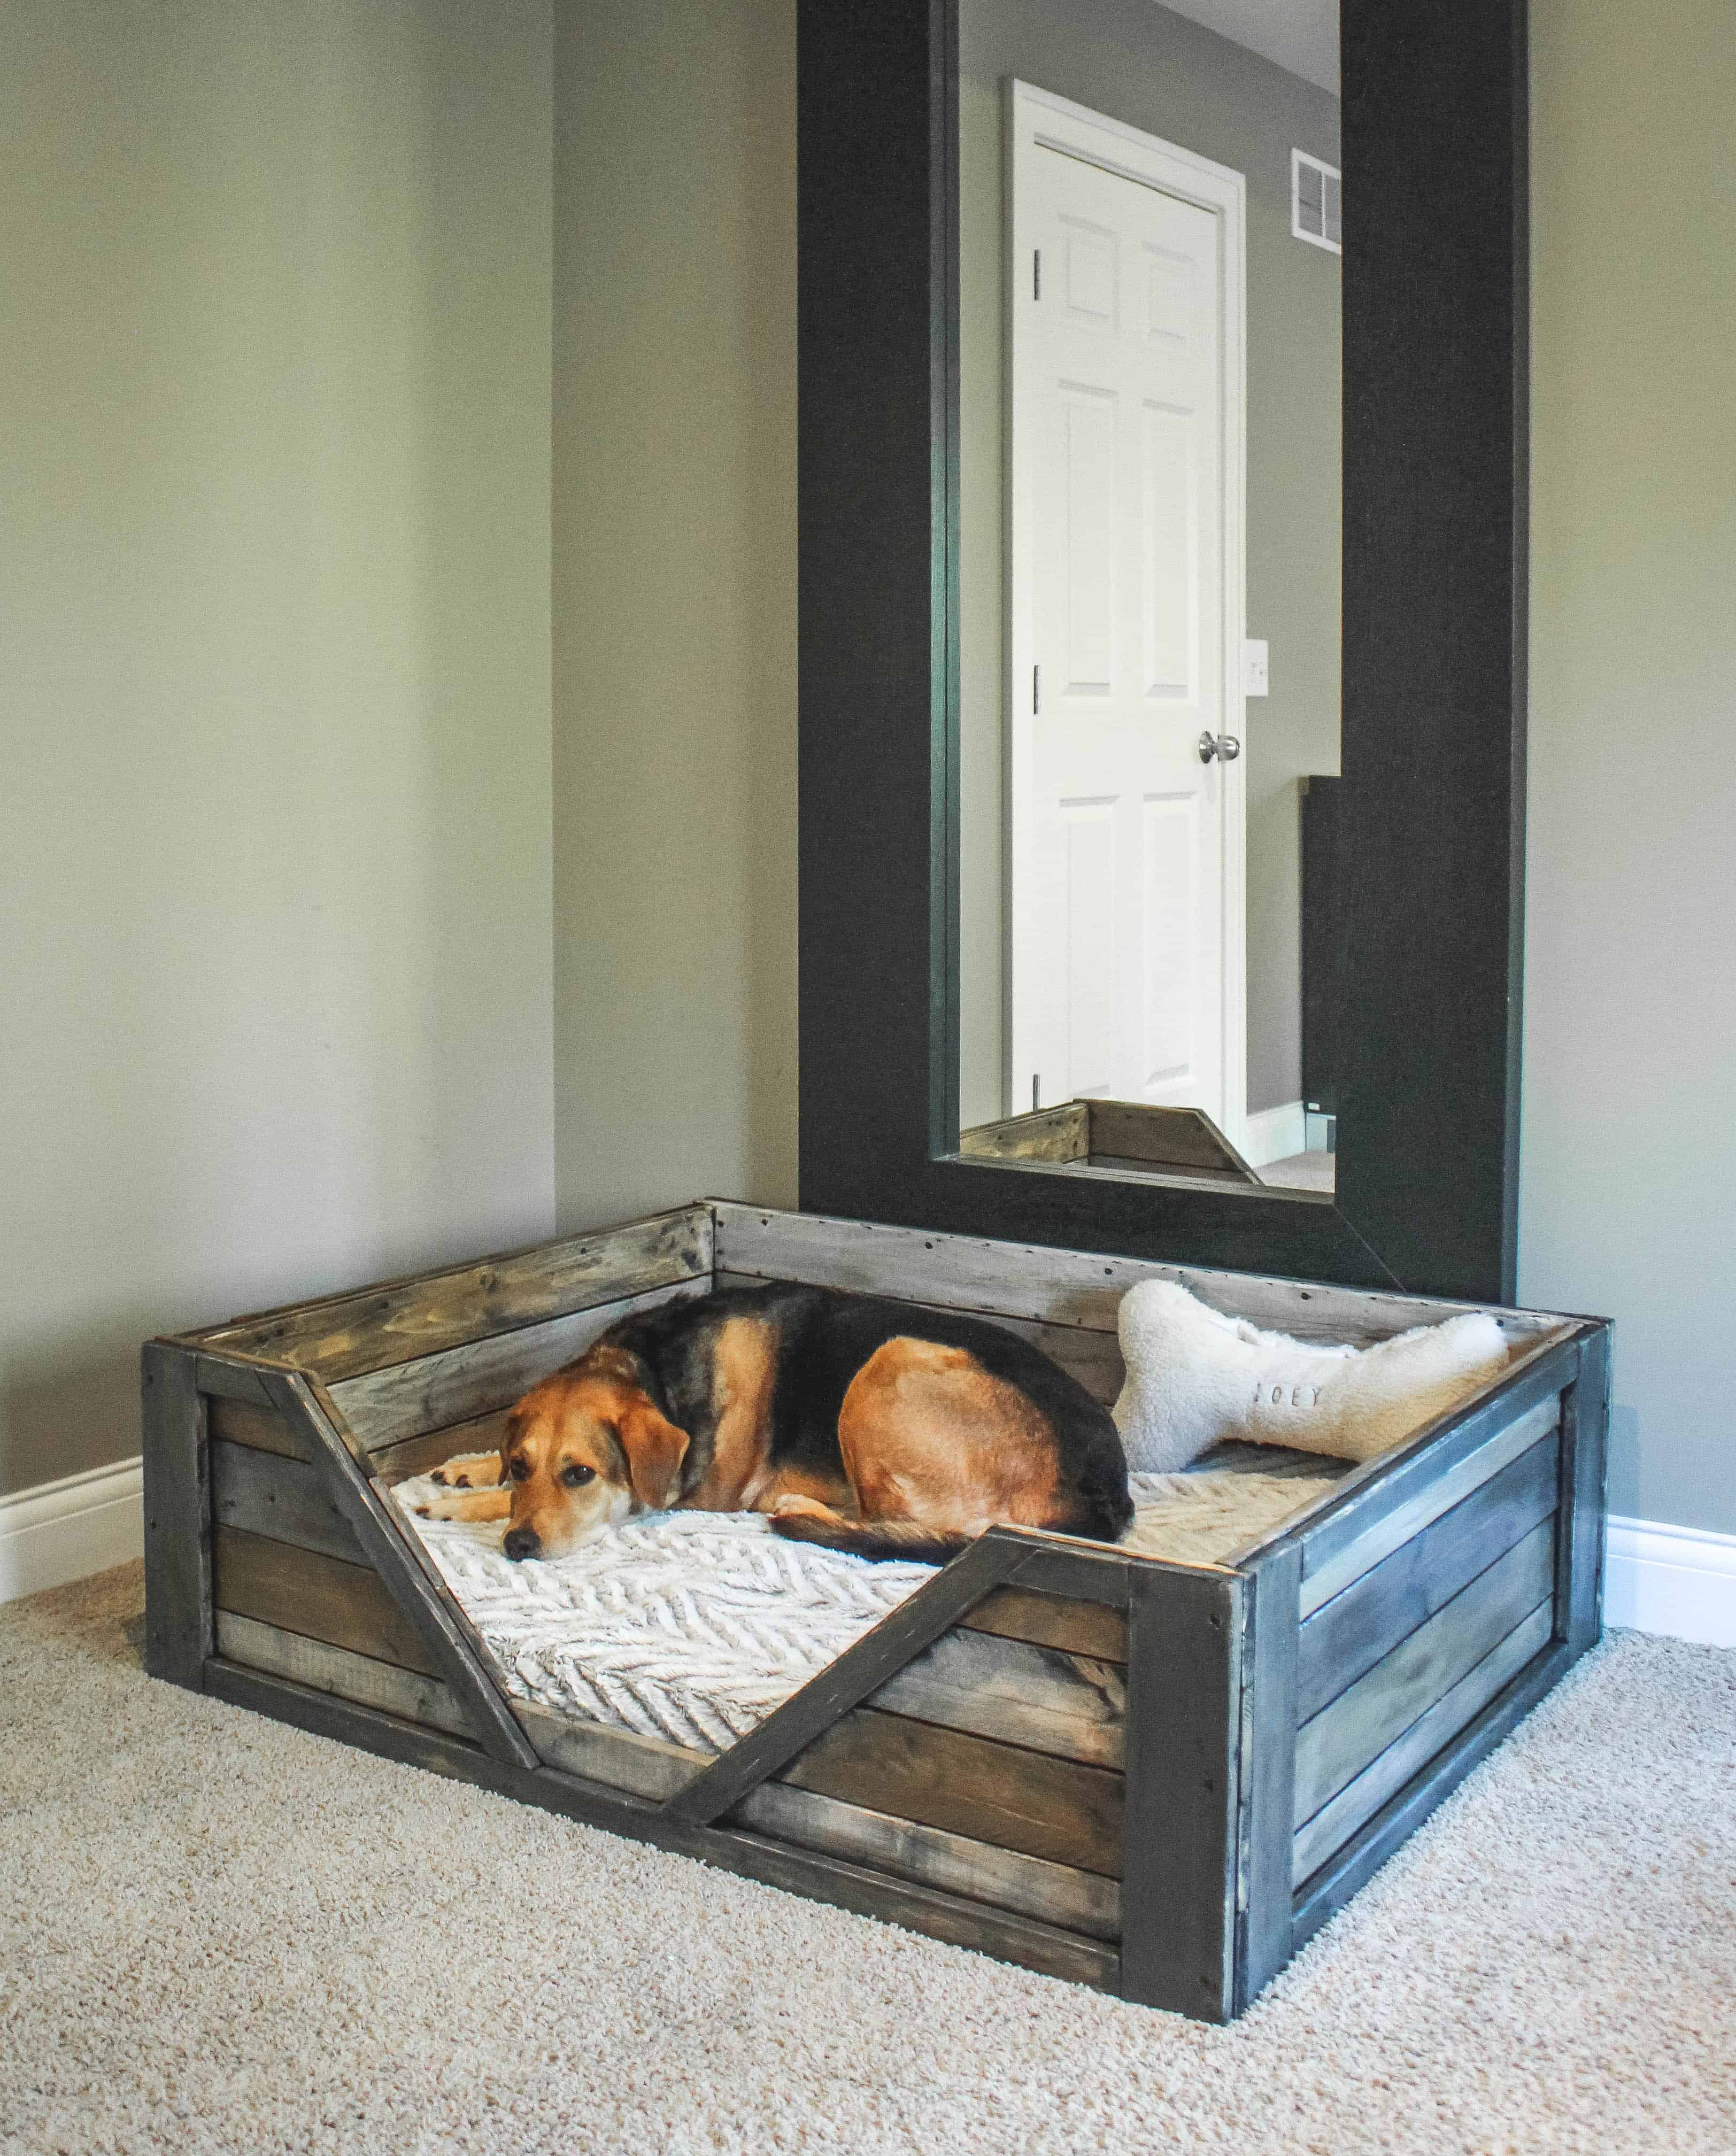 Great Recycled pallet bed frames for your home hometshetics